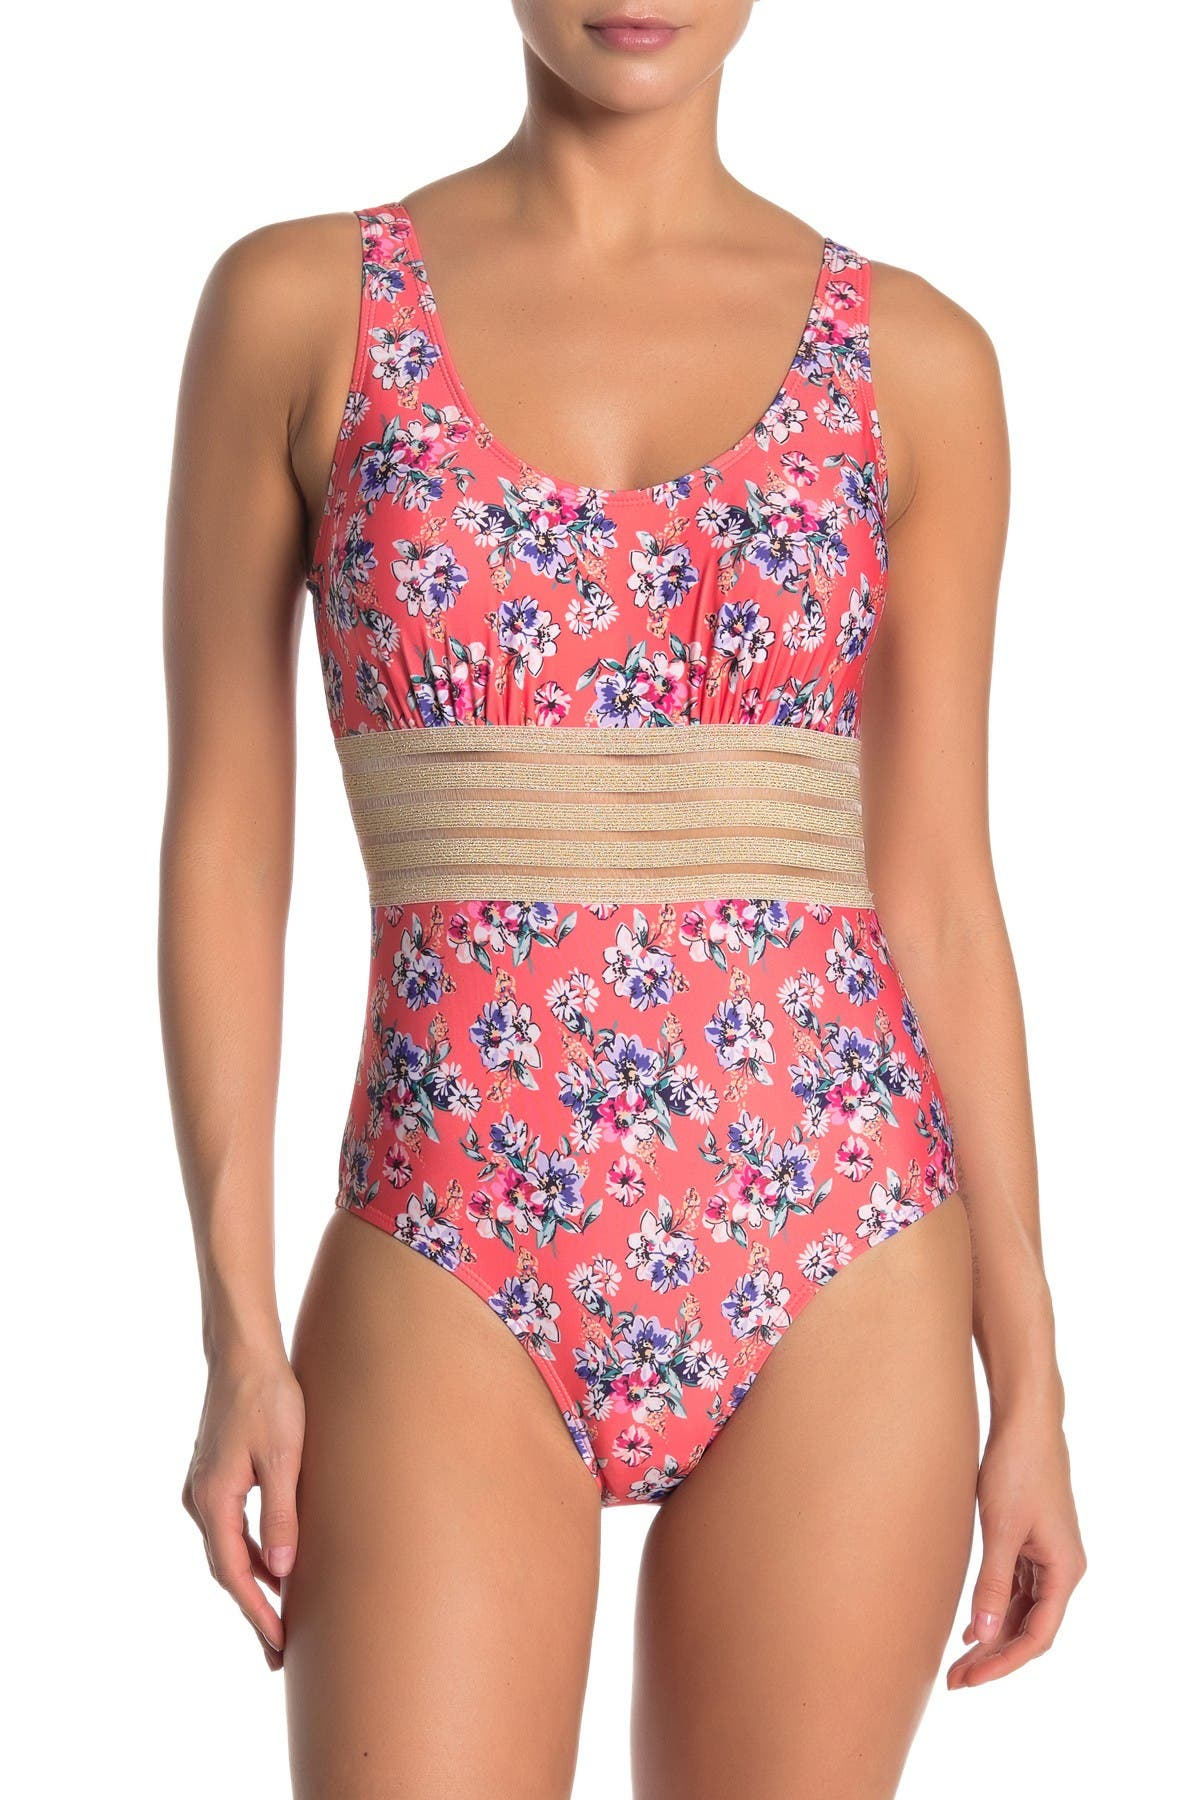 Image of Nicole Miller One-Piece Sleeveless Floral Swimsuit